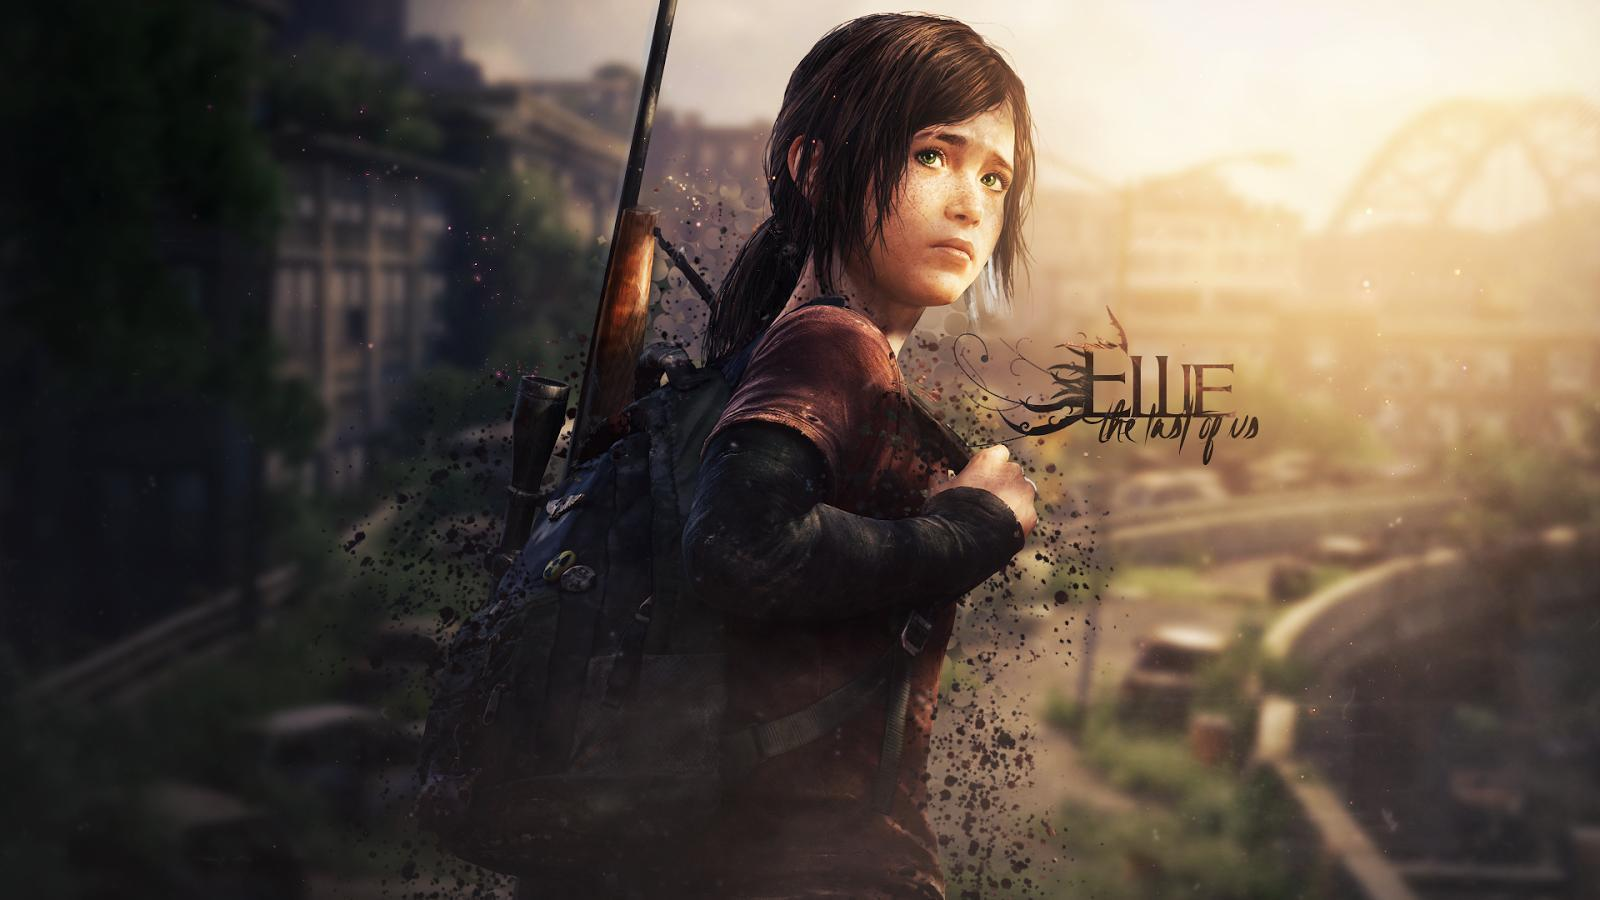 Ellie The Last Of Us Wallpaper: Wallpapers Girls